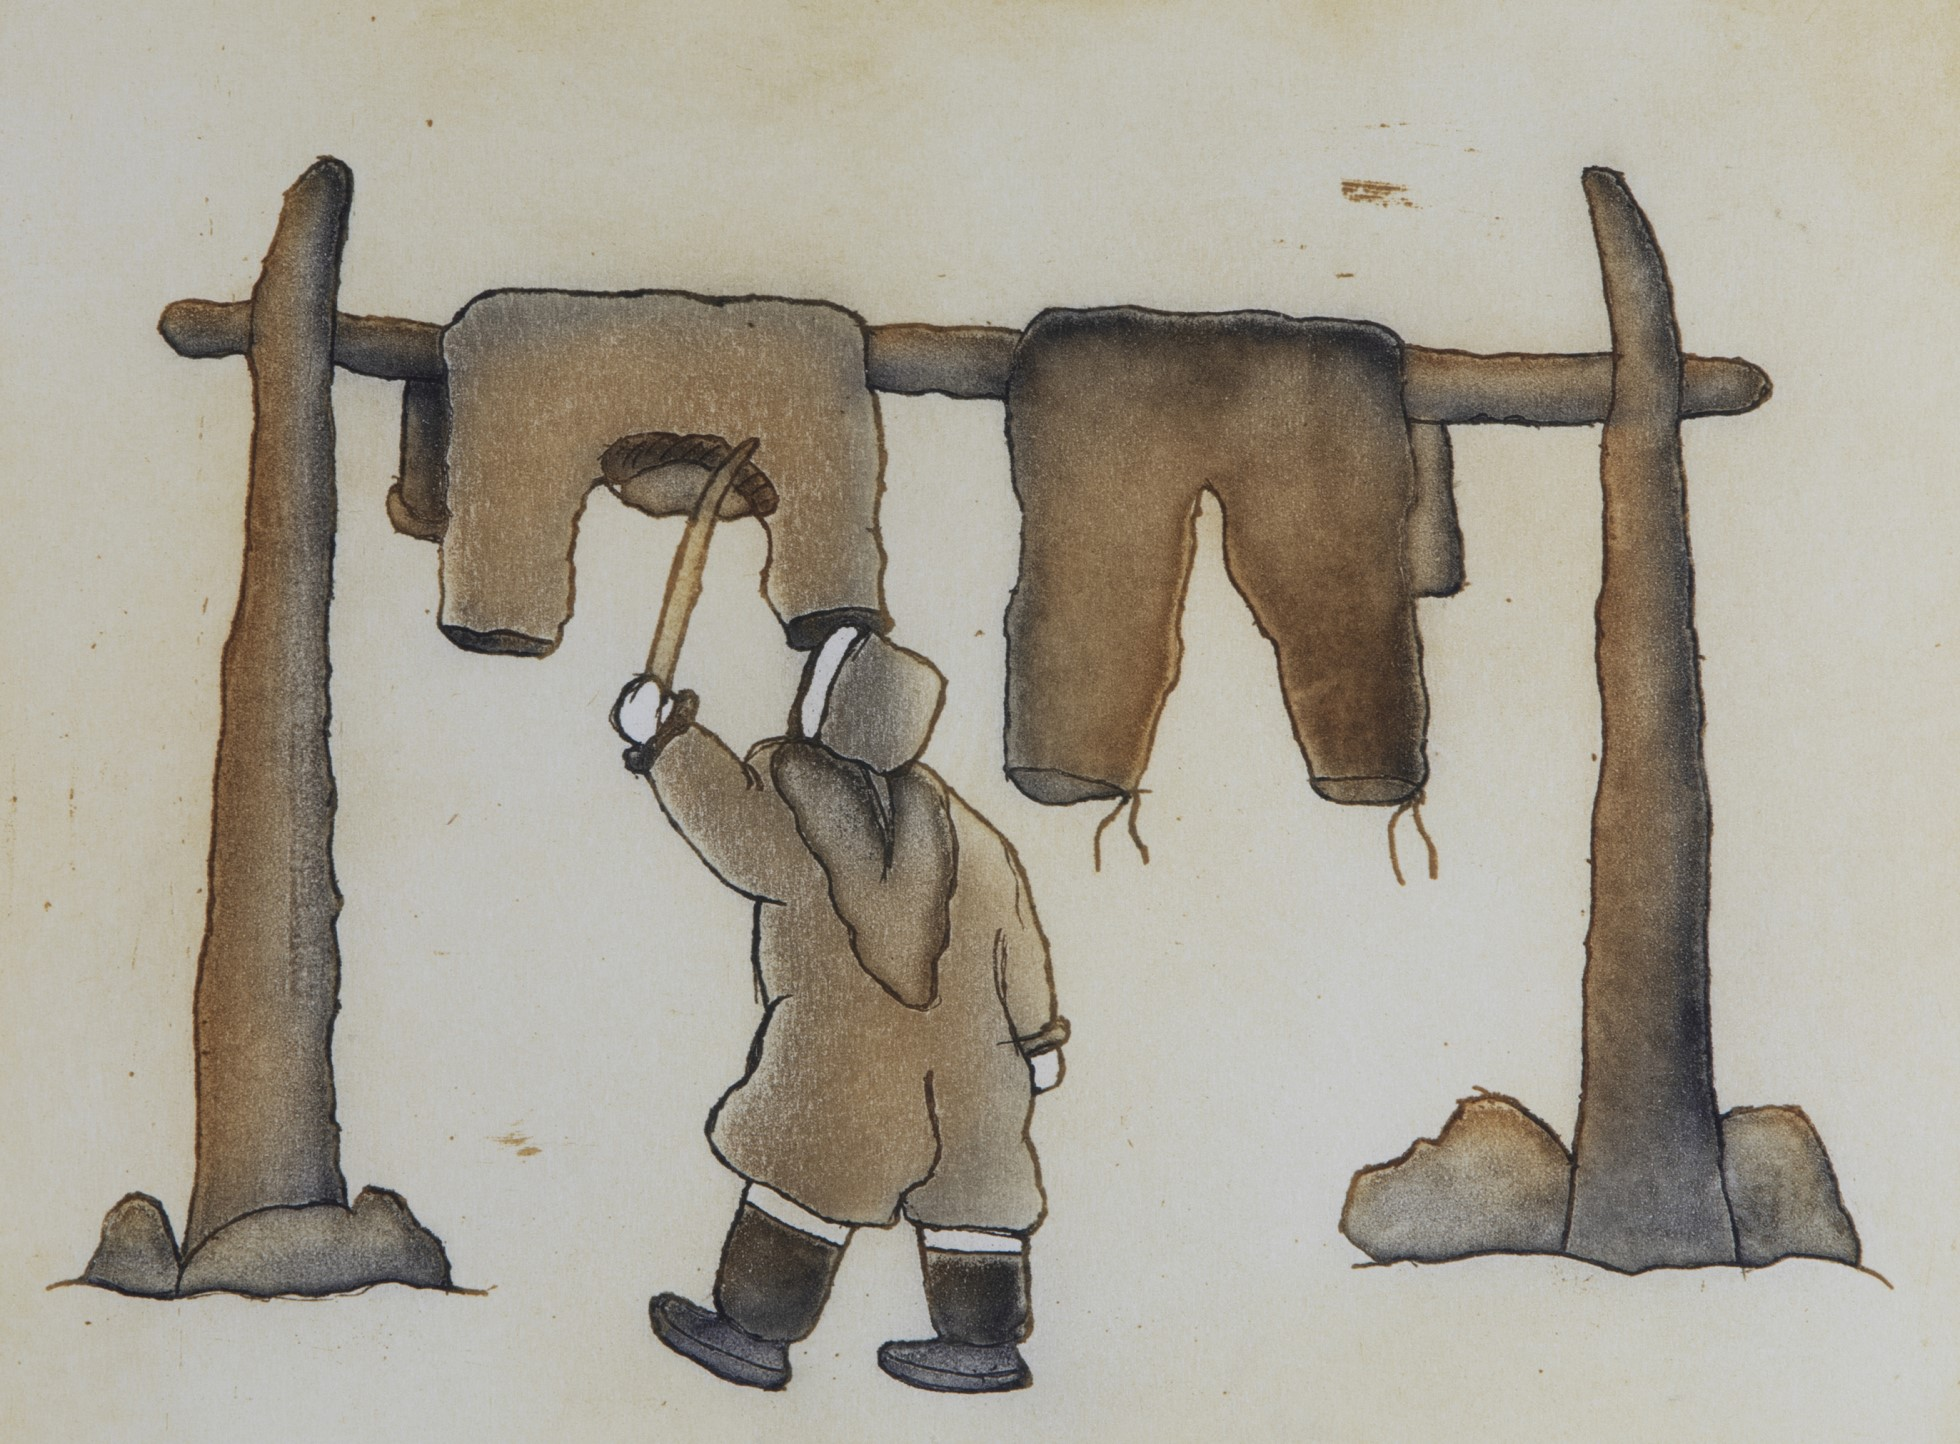 A painting of a person standing between two posts, which hold a horizonal bar on which clothes are hung. The person is shown from behind wearing a parka and boots. They beat the clothes with a stick. The scene is represented in brown tones.